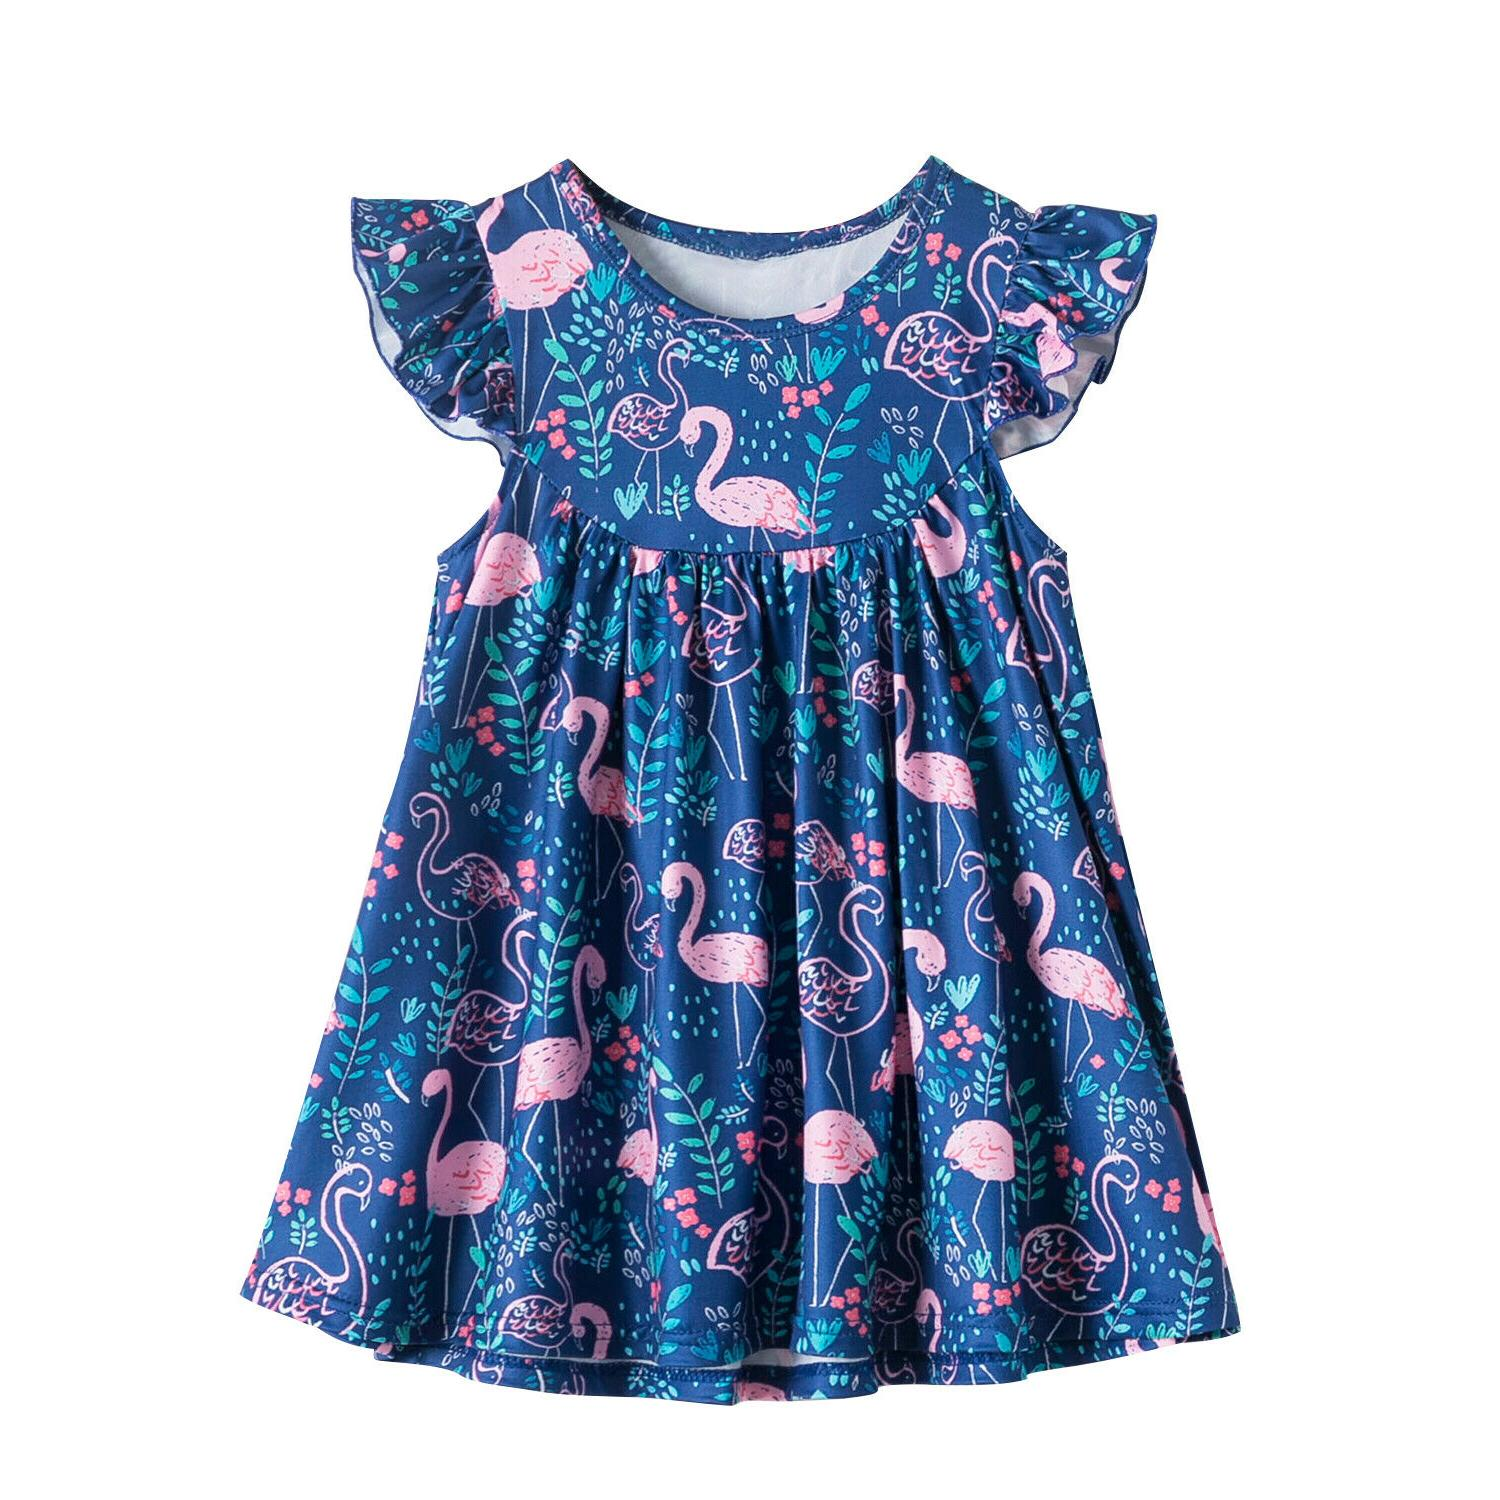 Baby Flower Lace Embroidery Princess Party Summer Clothes Size